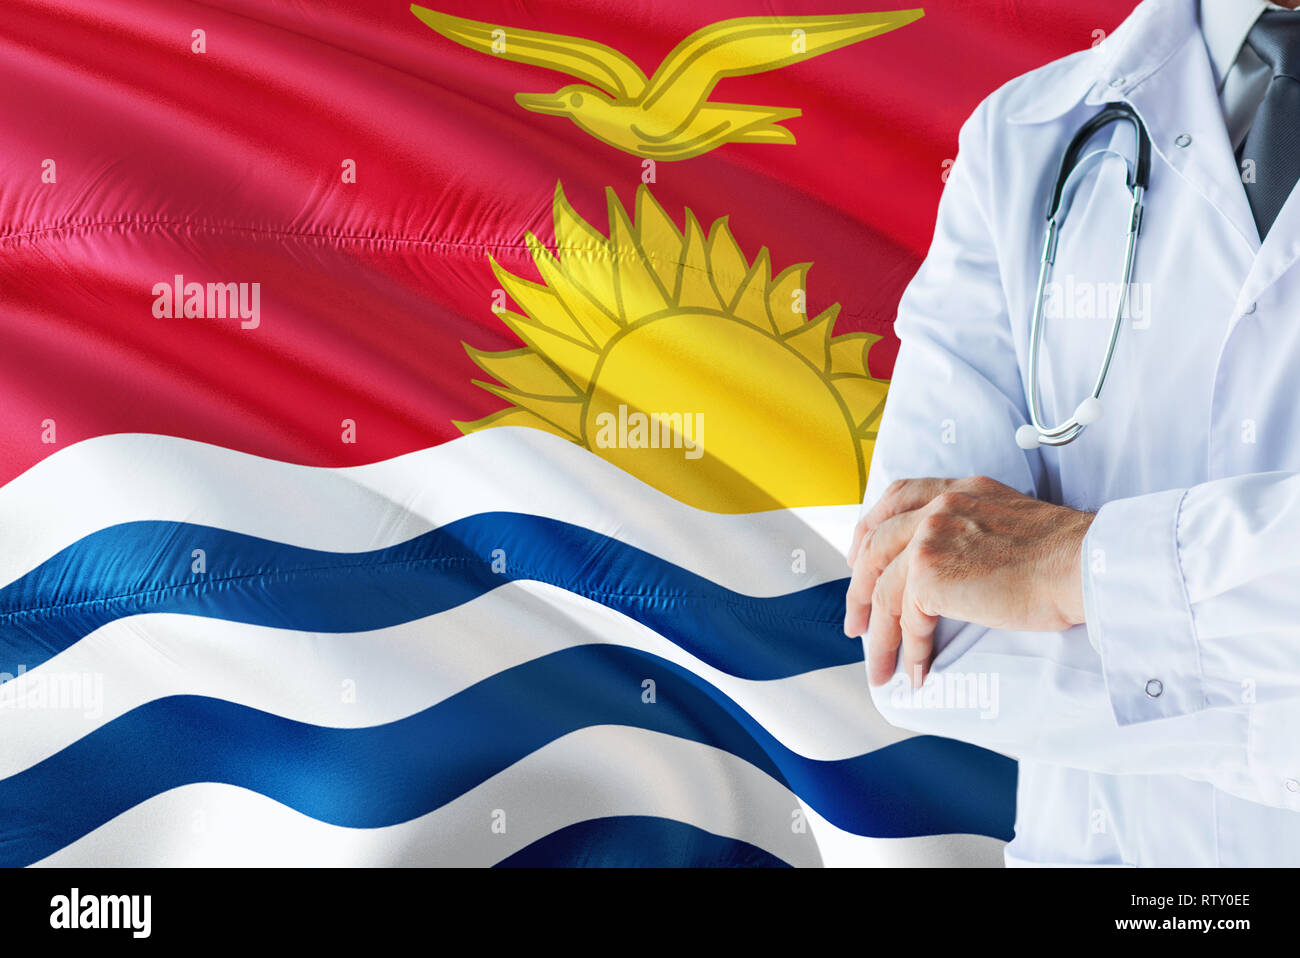 Doctor standing with stethoscope on Kiribati flag background. National healthcare system concept, medical theme. - Stock Image